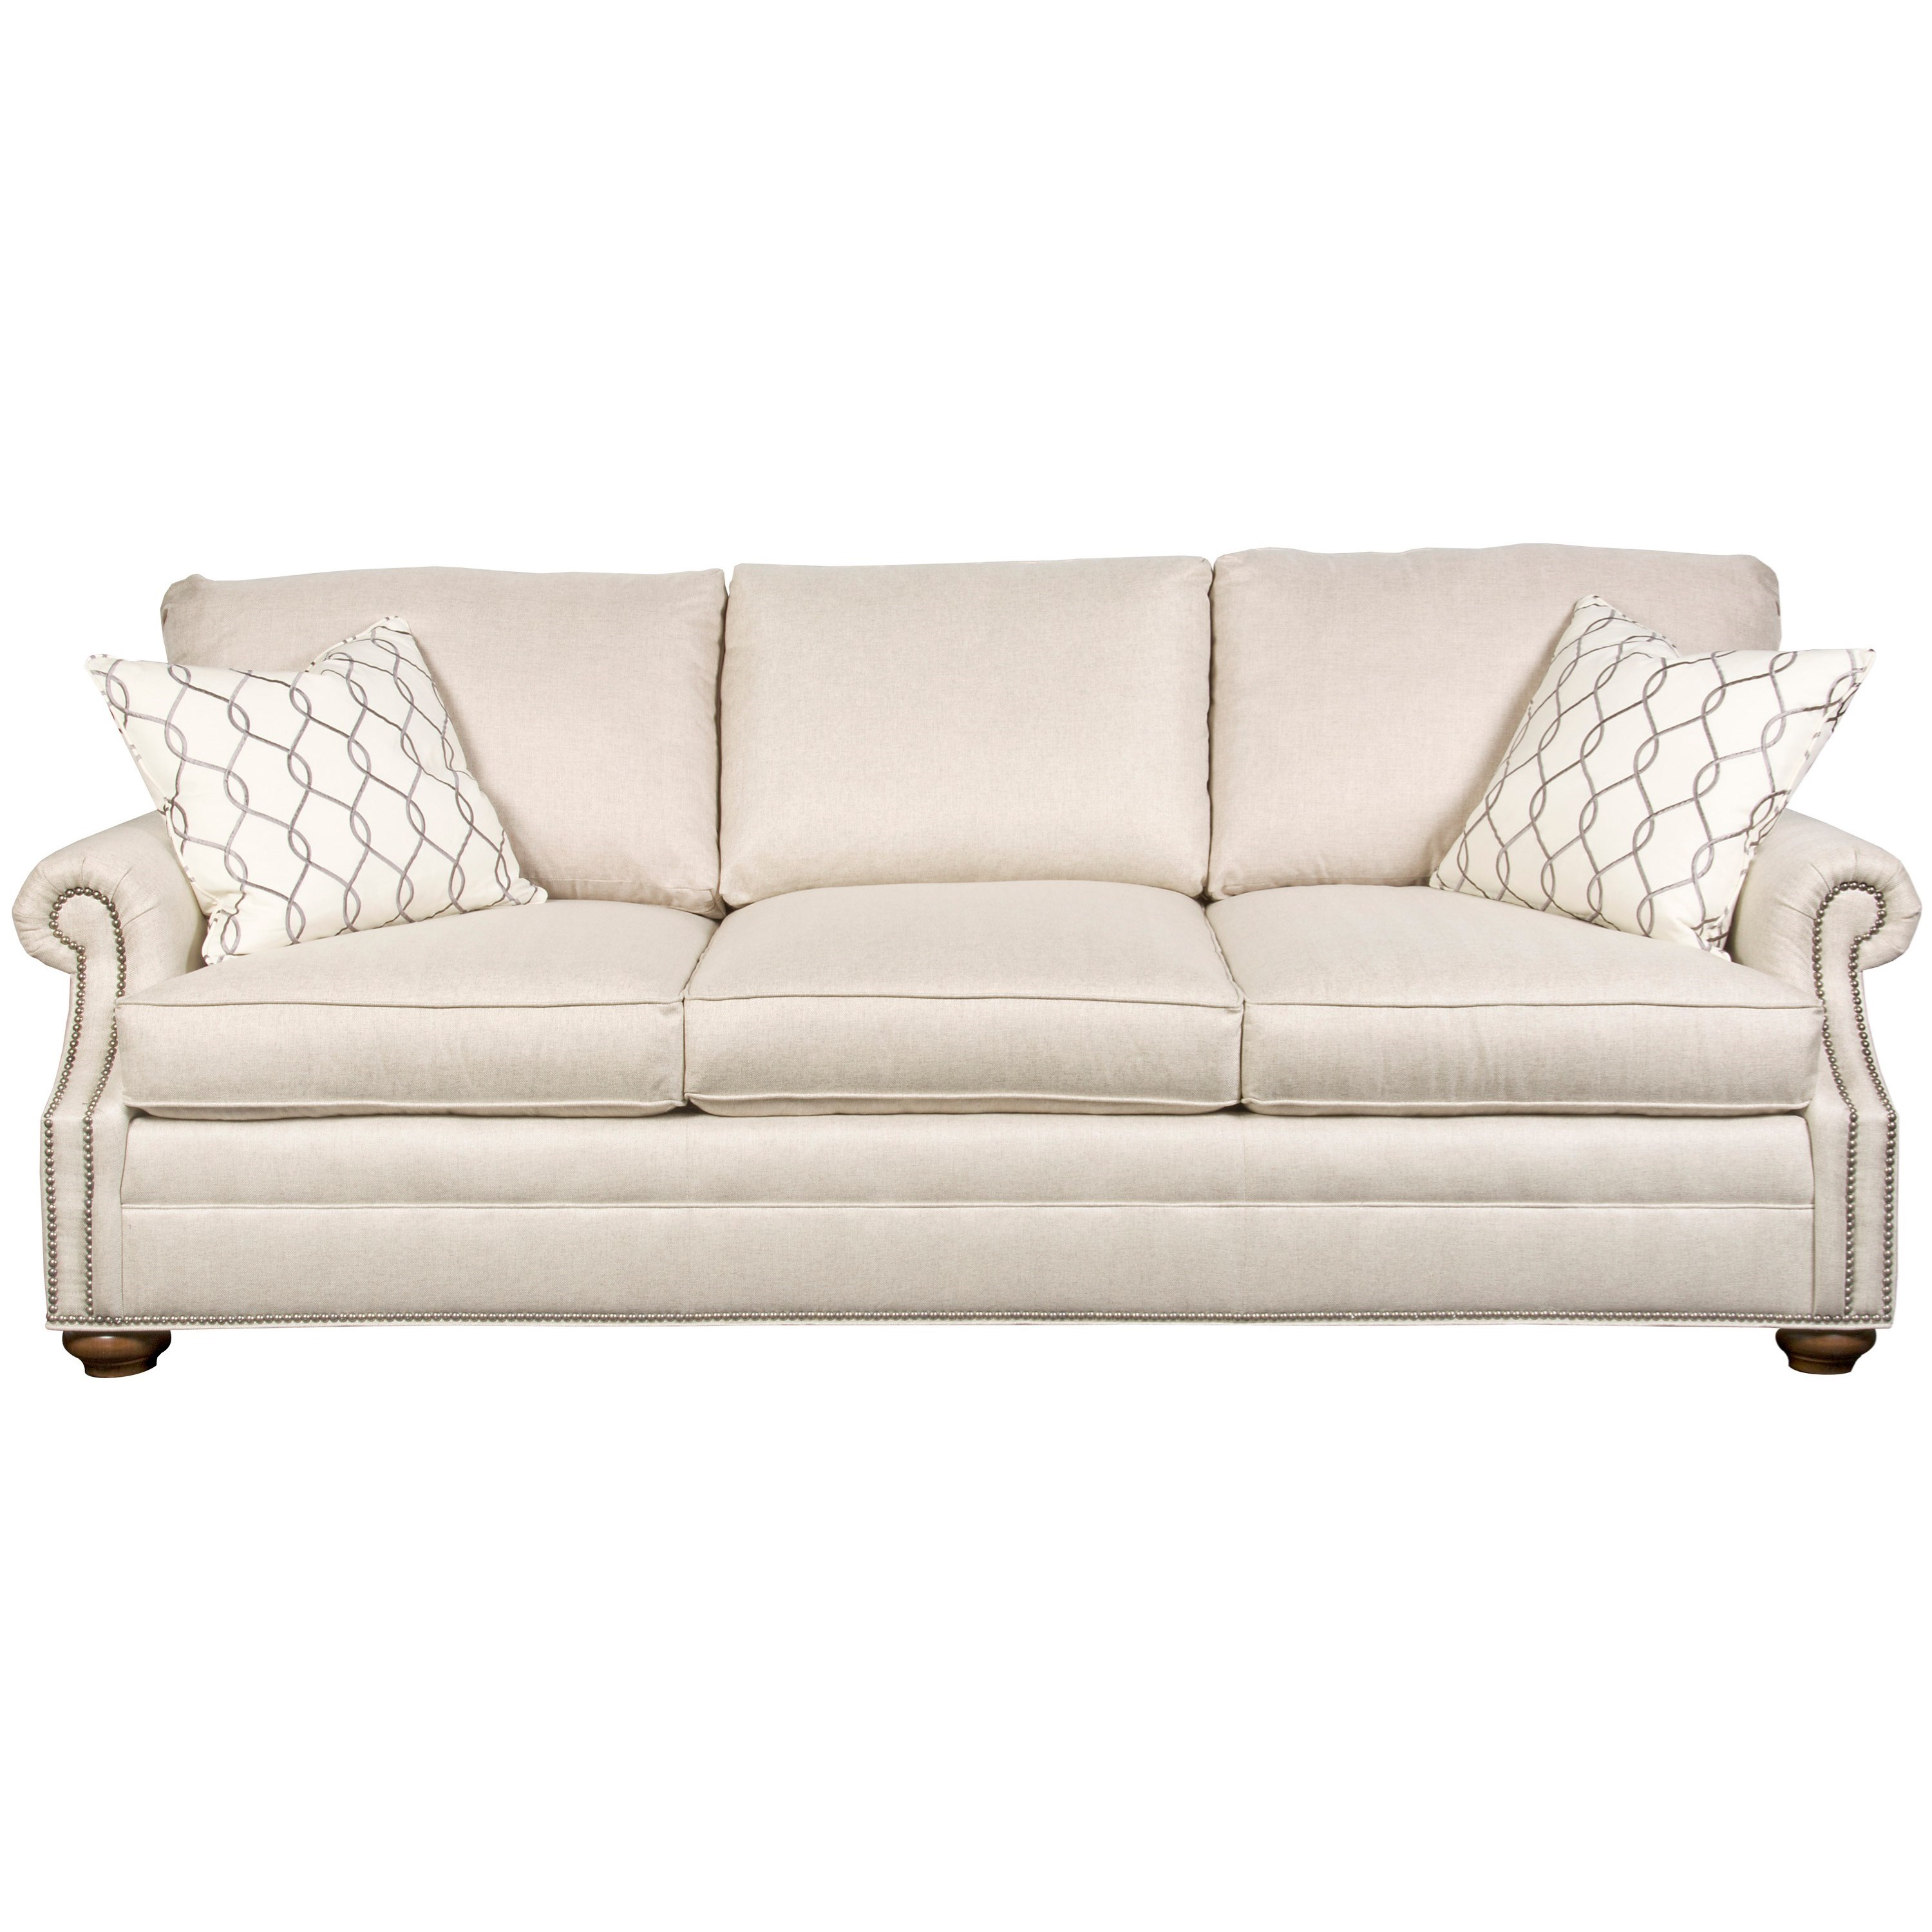 American Bungalow Gutherly Sofa by Vanguard Furniture at Sprintz Furniture